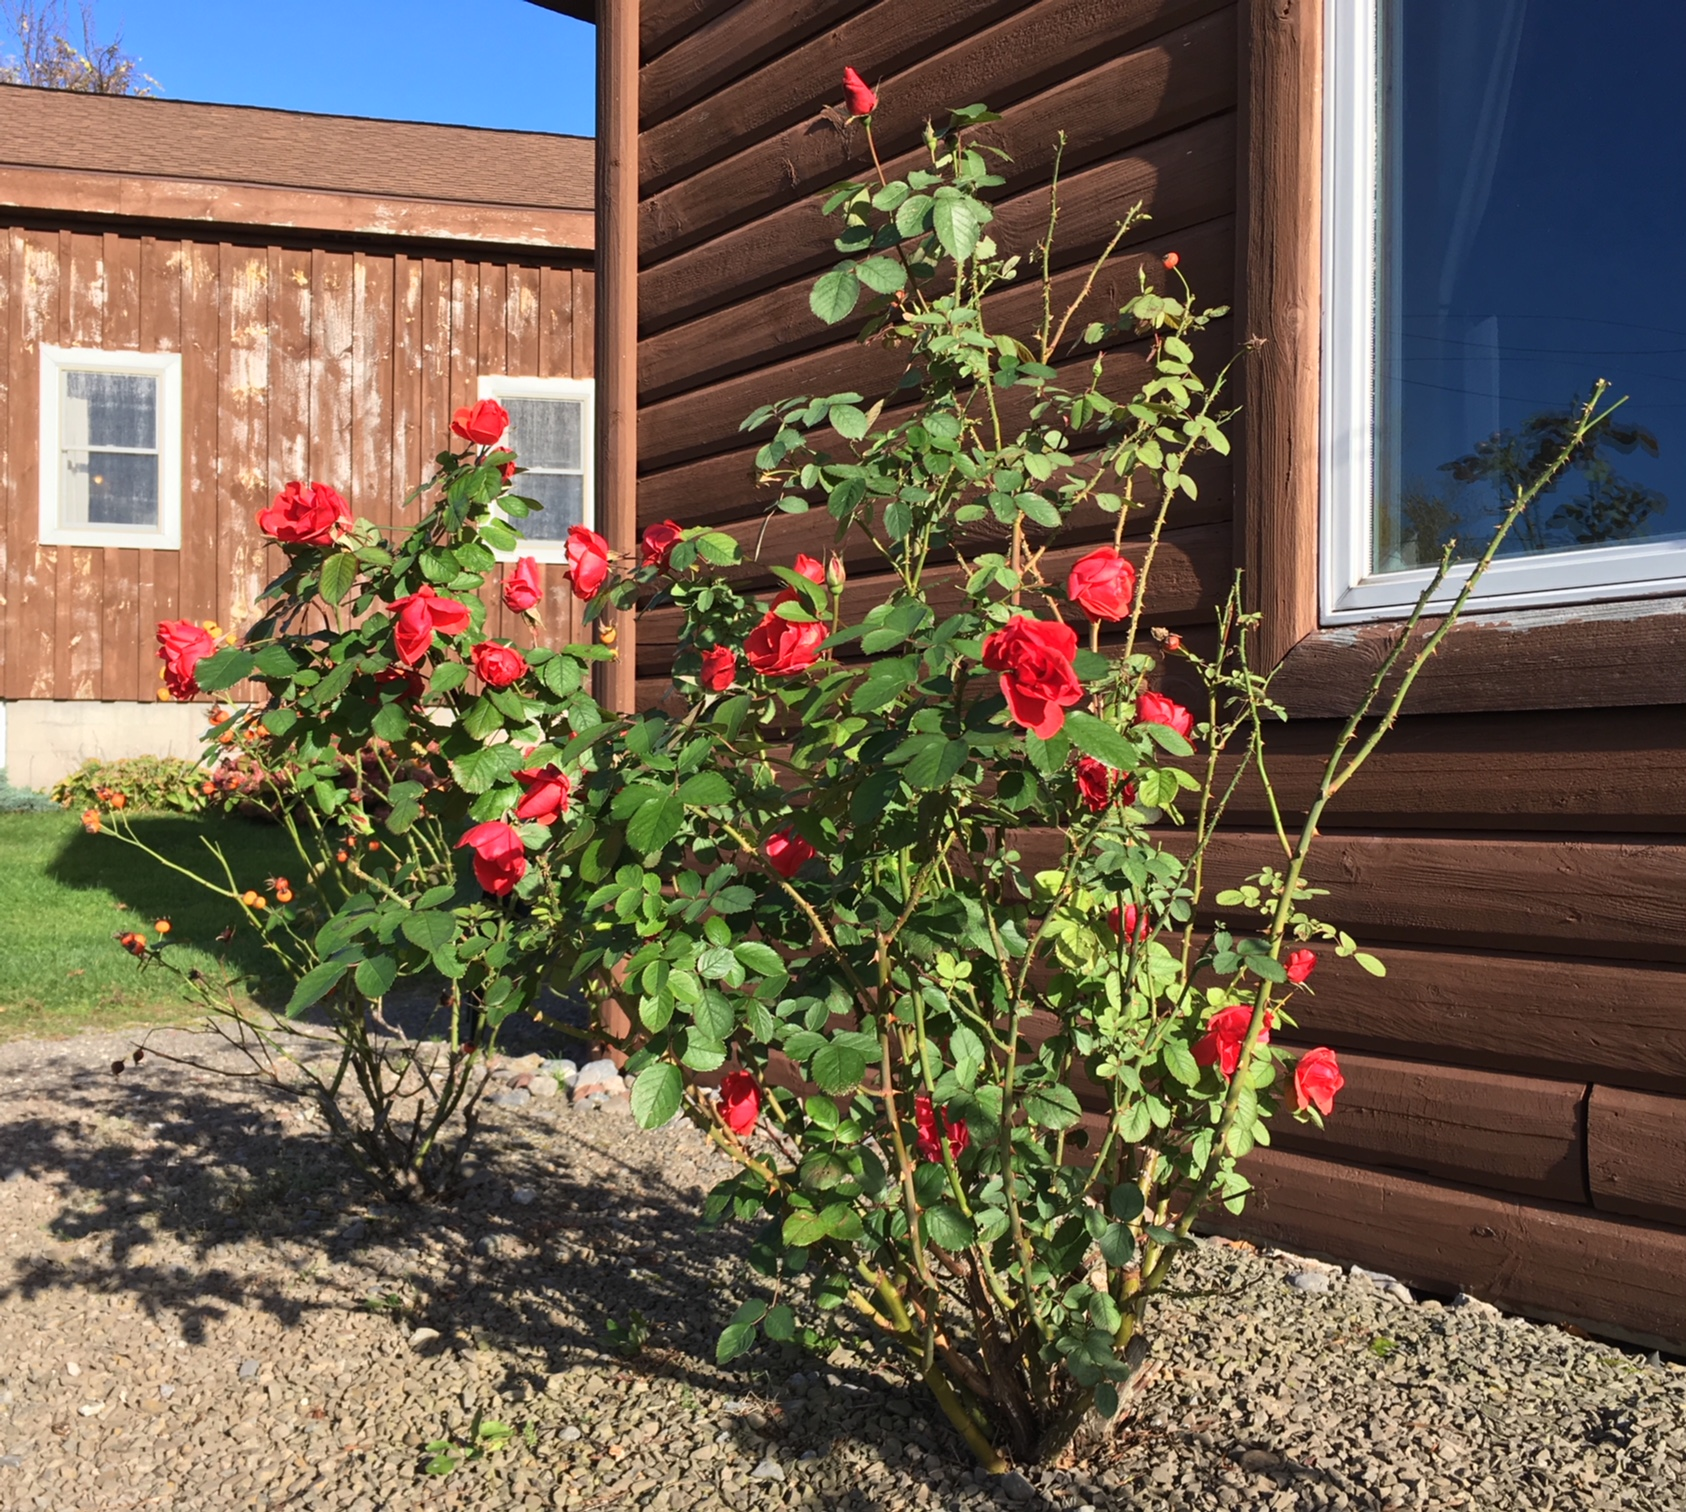 Brilliant October blossoms on the Bush Roses